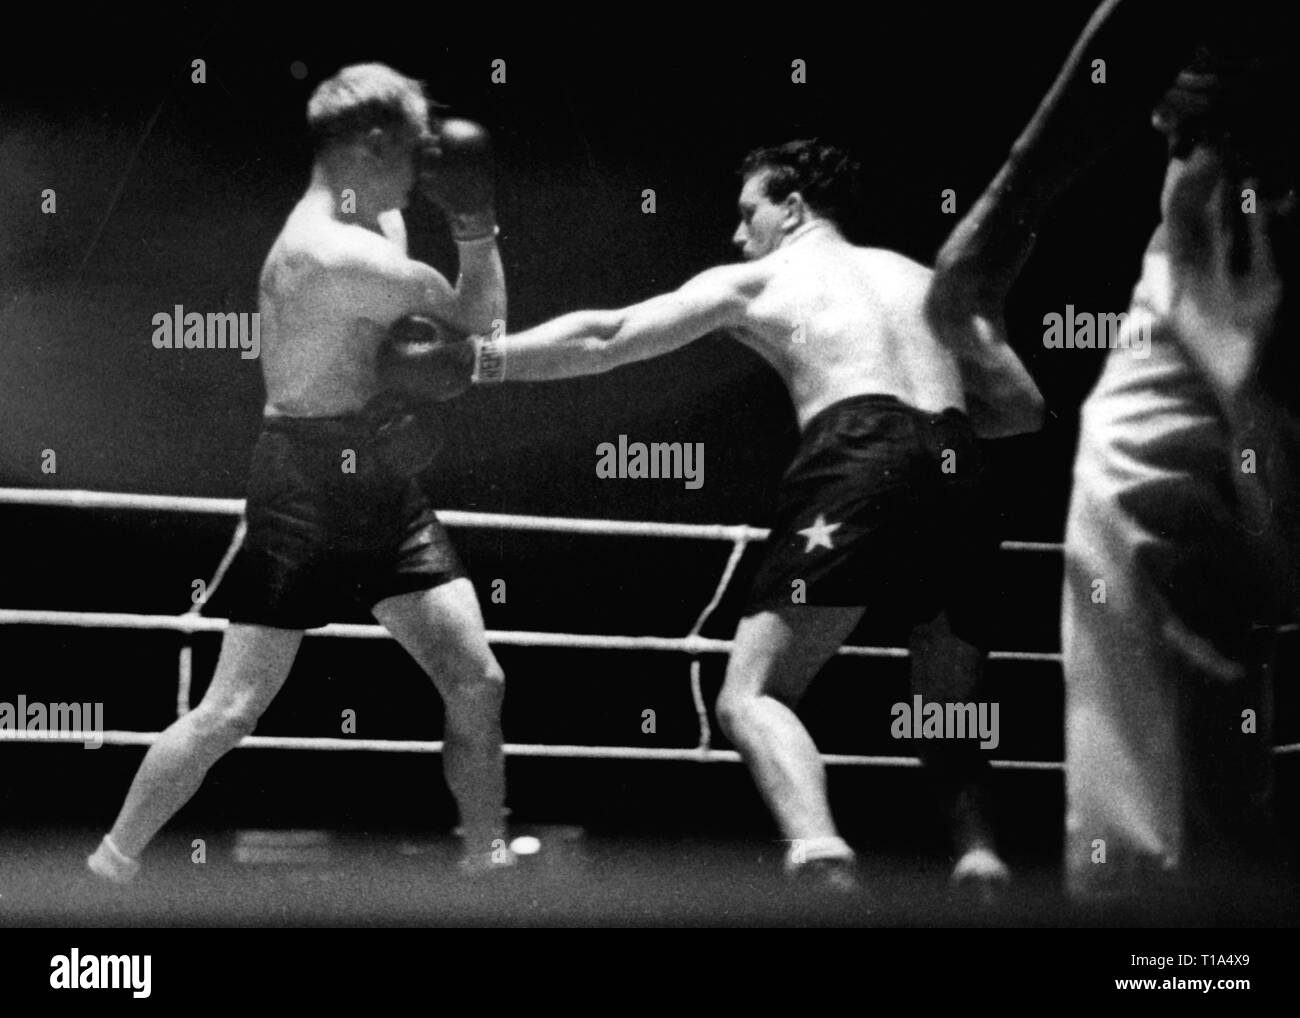 sports, boxing, boxing match Gustave Roth (Belgium) against Jupp Besselmann (Germany), Roth lands a hit, Sportpalast, Berlin, 31.1.1938, Additional-Rights-Clearance-Info-Not-Available - Stock Image